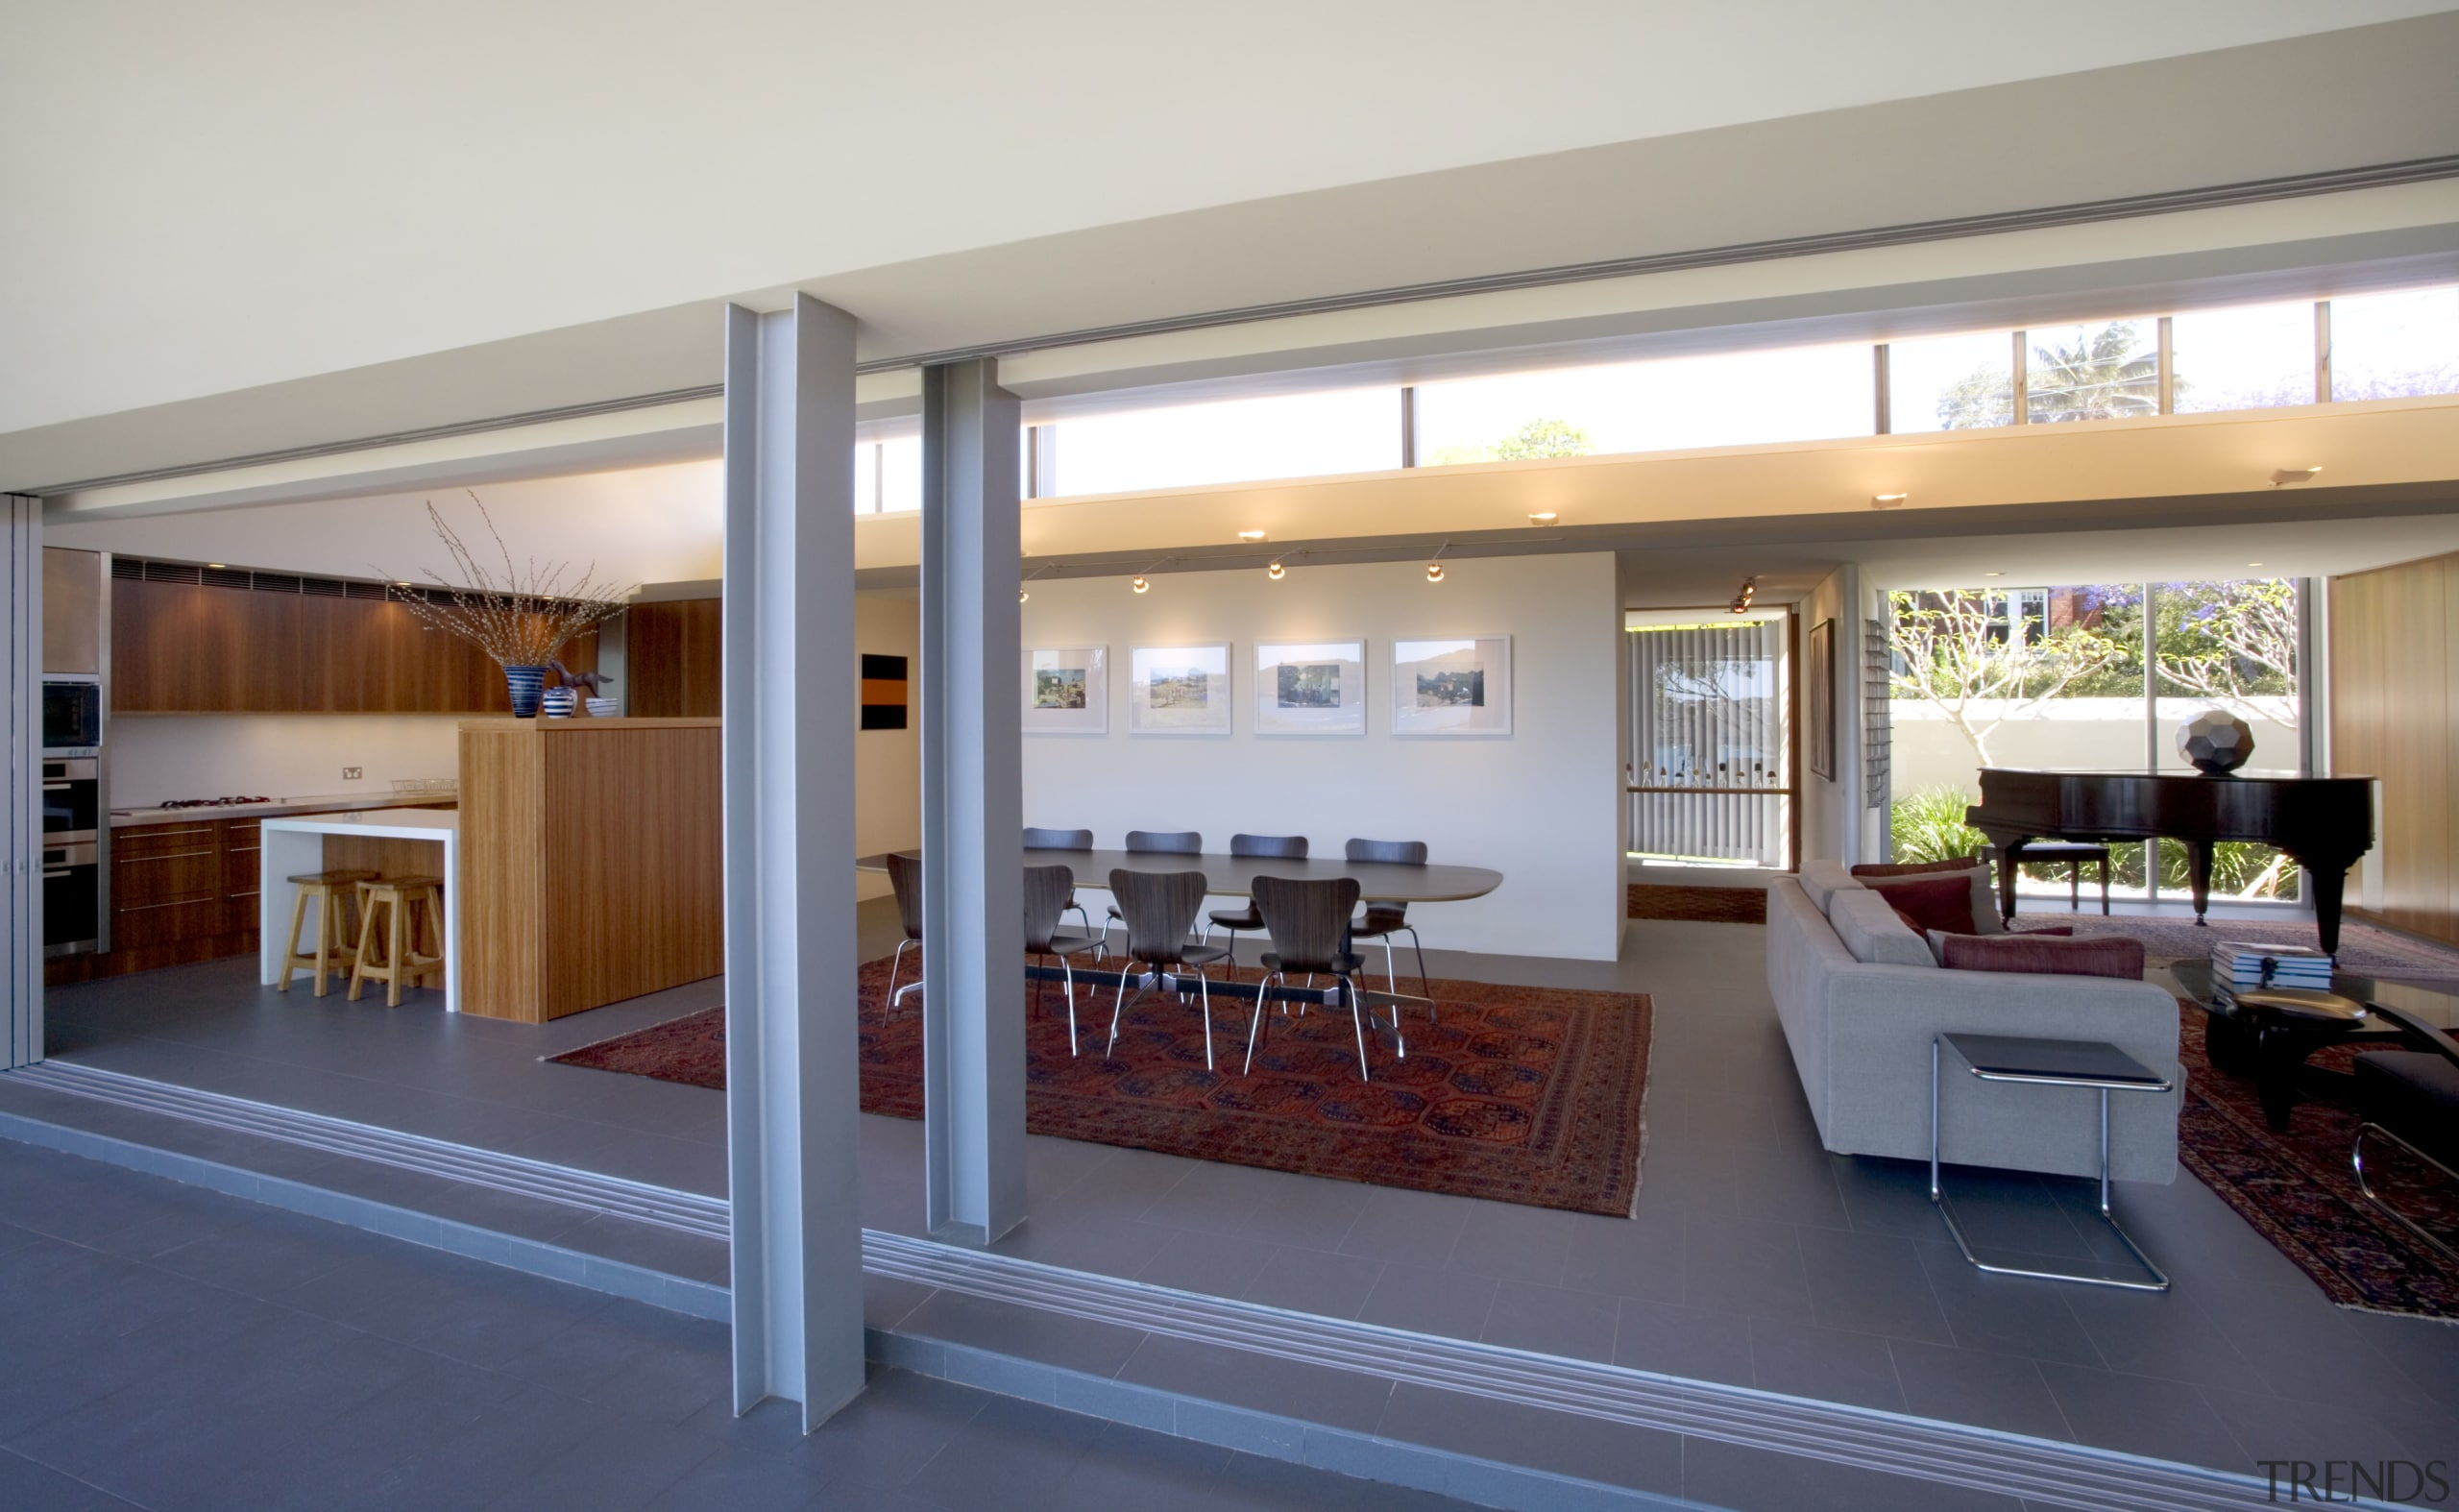 The entrance way is to the left of architecture, door, house, interior design, living room, real estate, window, gray